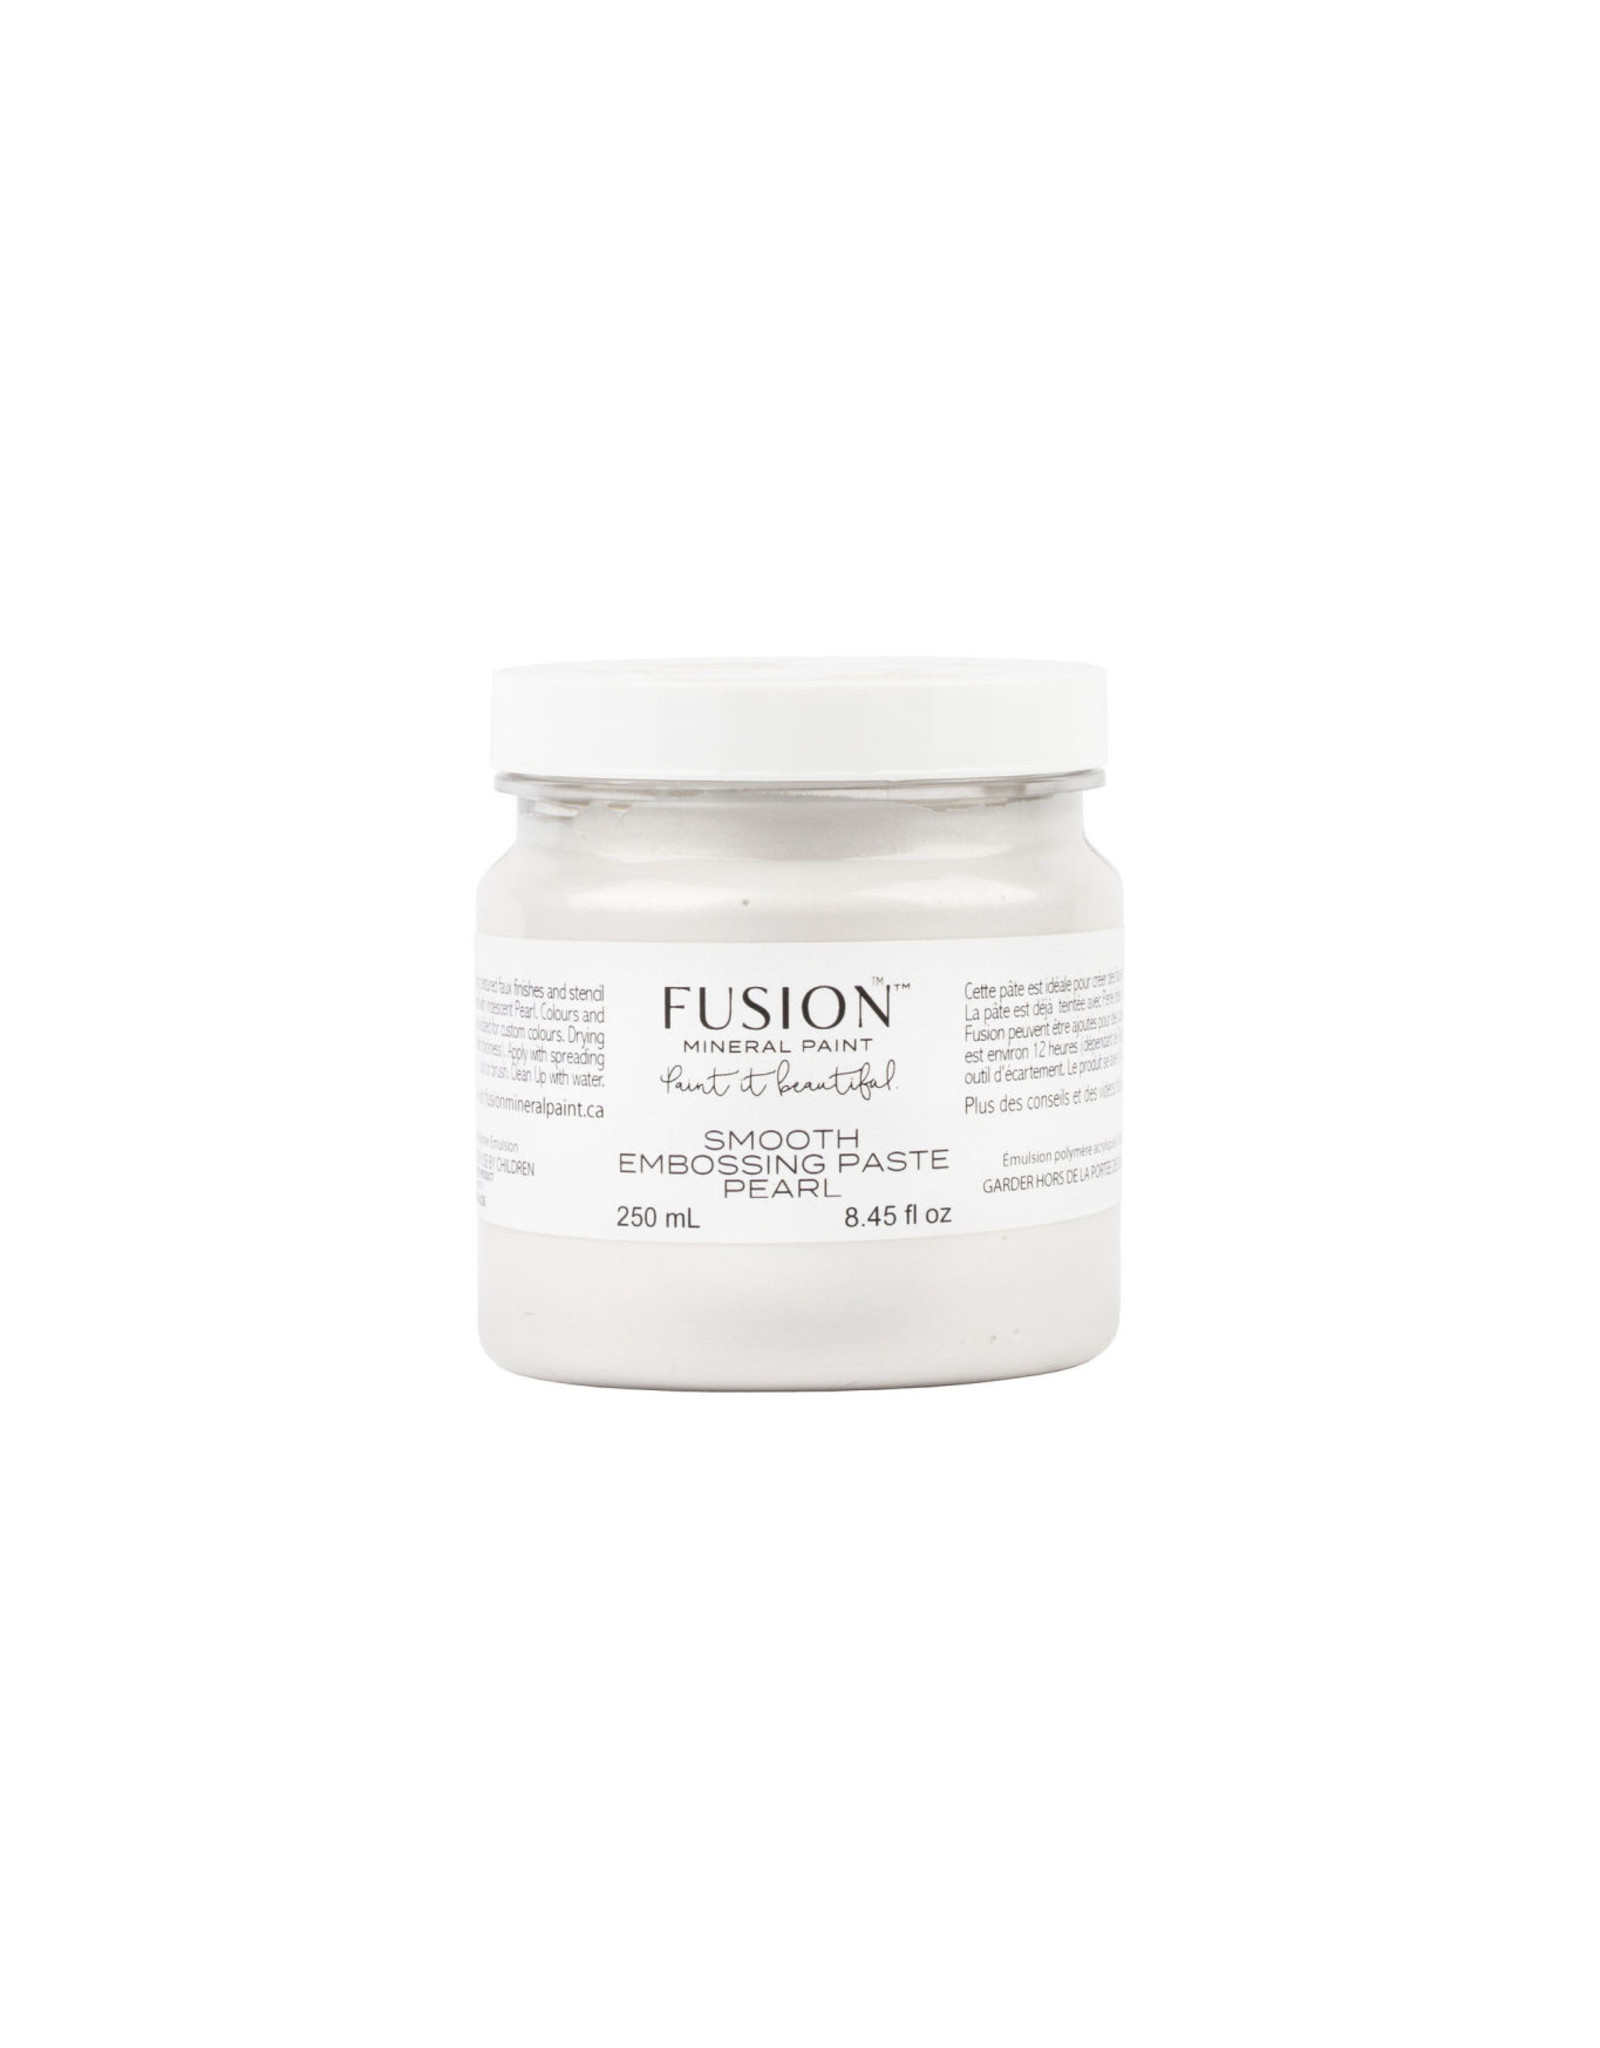 Fusion Mineral Paint Smooth Embossing Paste - Pearl 250ml